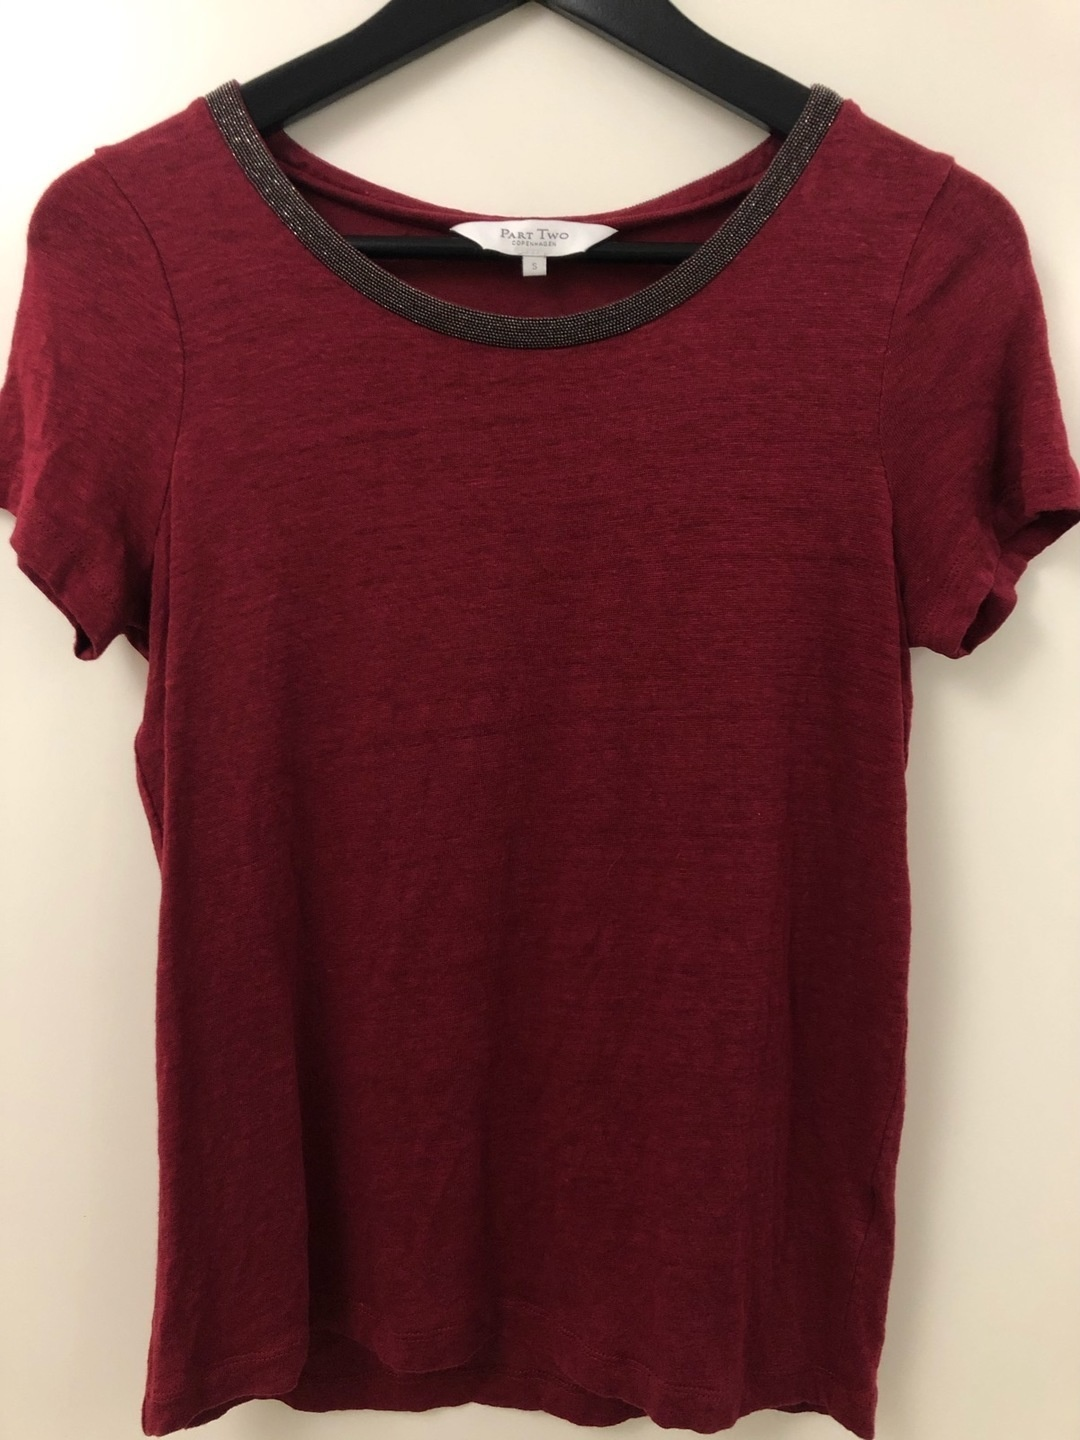 Women's tops & t-shirts - PART TWO photo 1